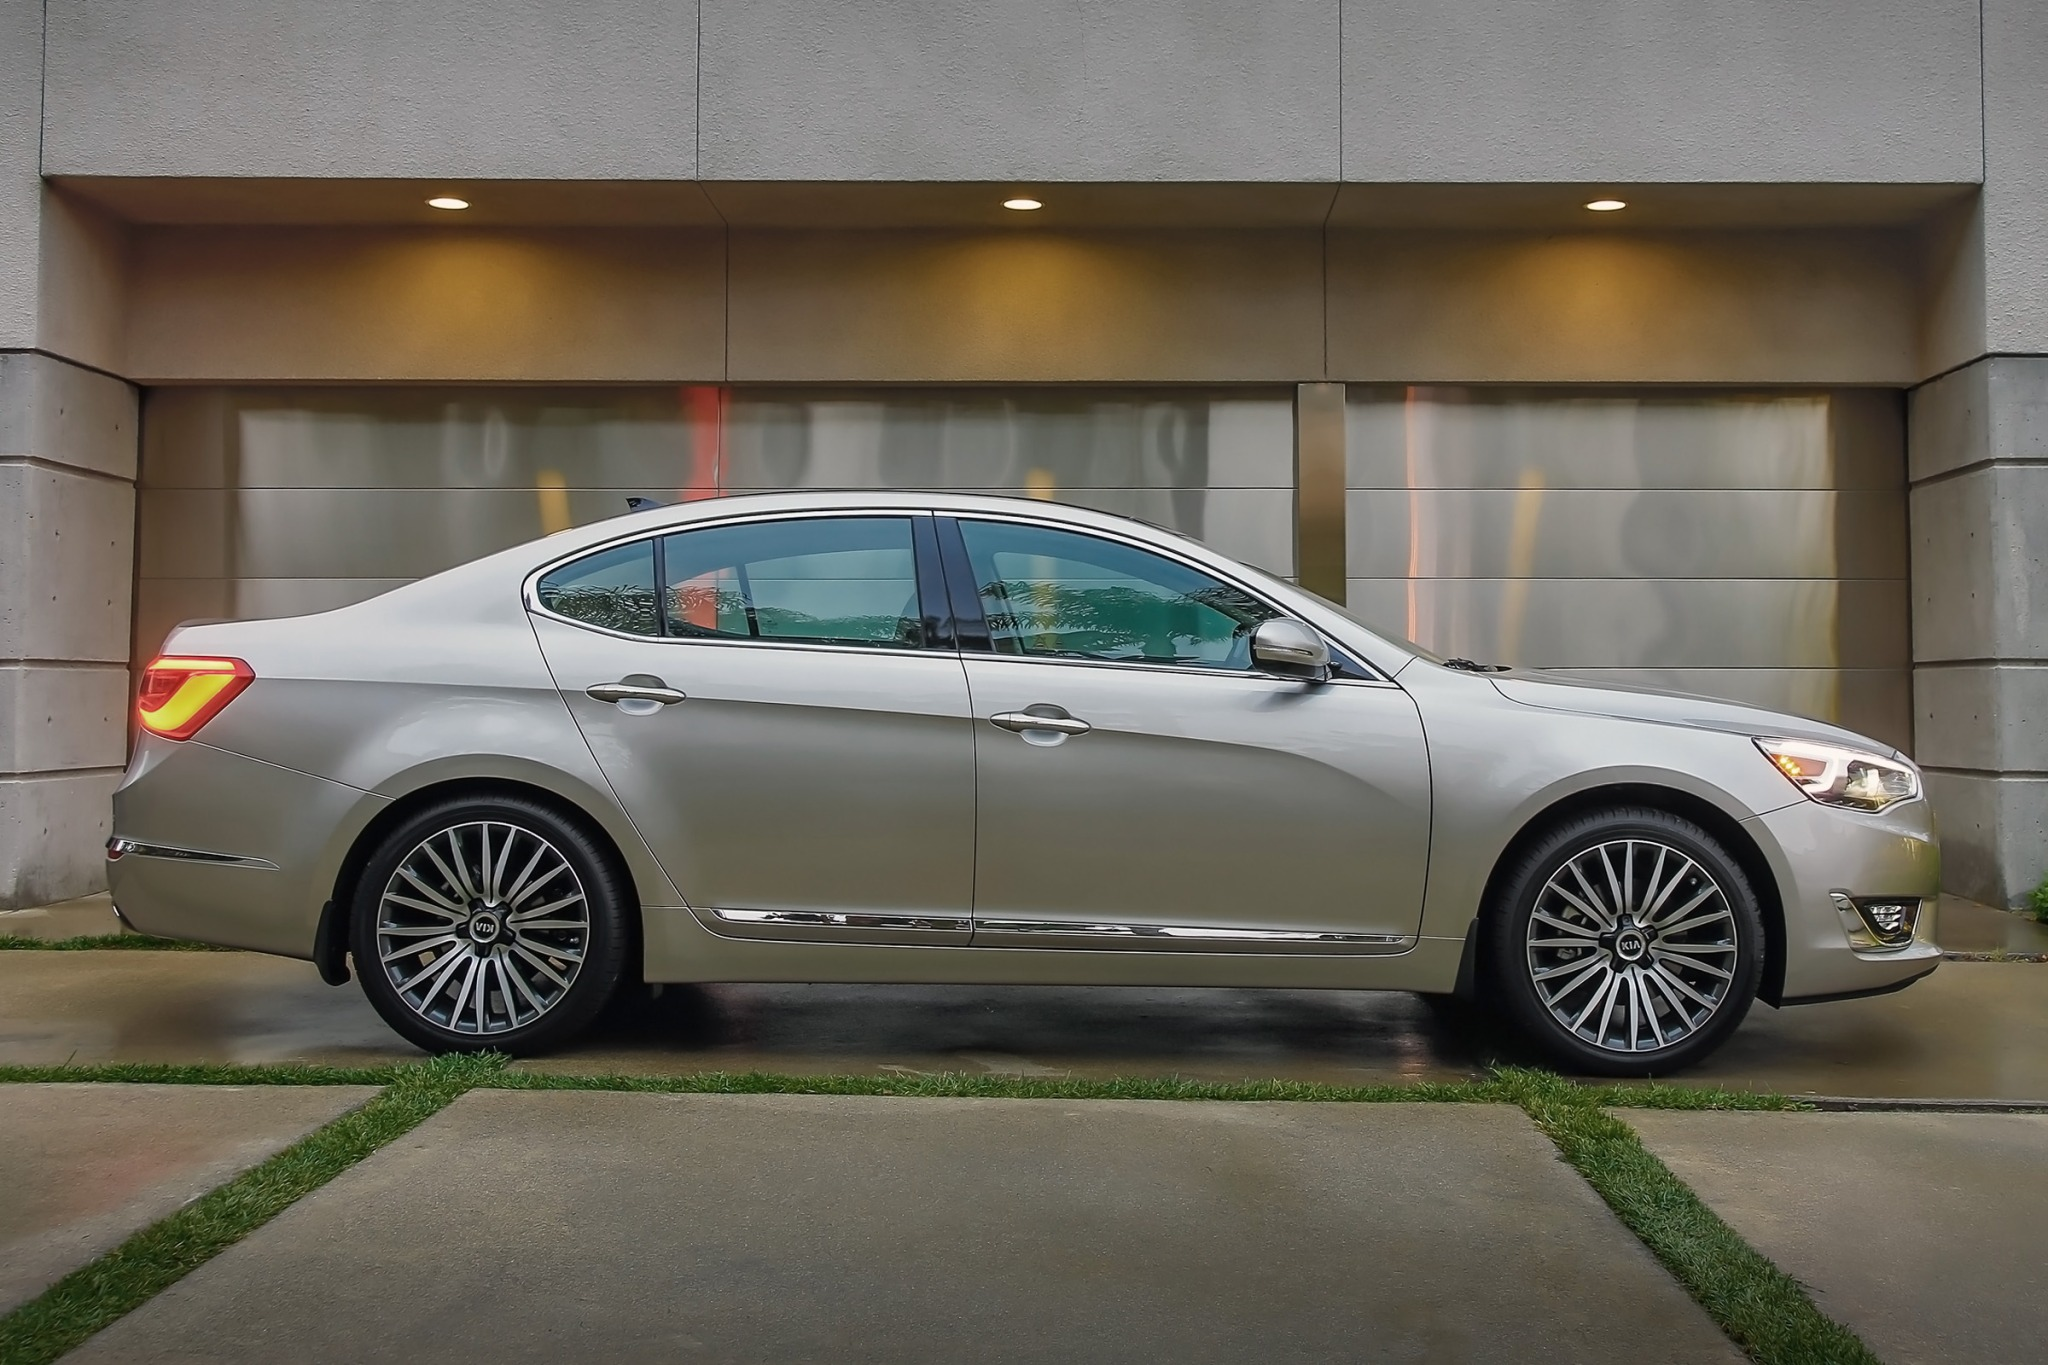 comes safety kia straight john test topline the luxury six features loaded cadenza premium road and with s leblanc